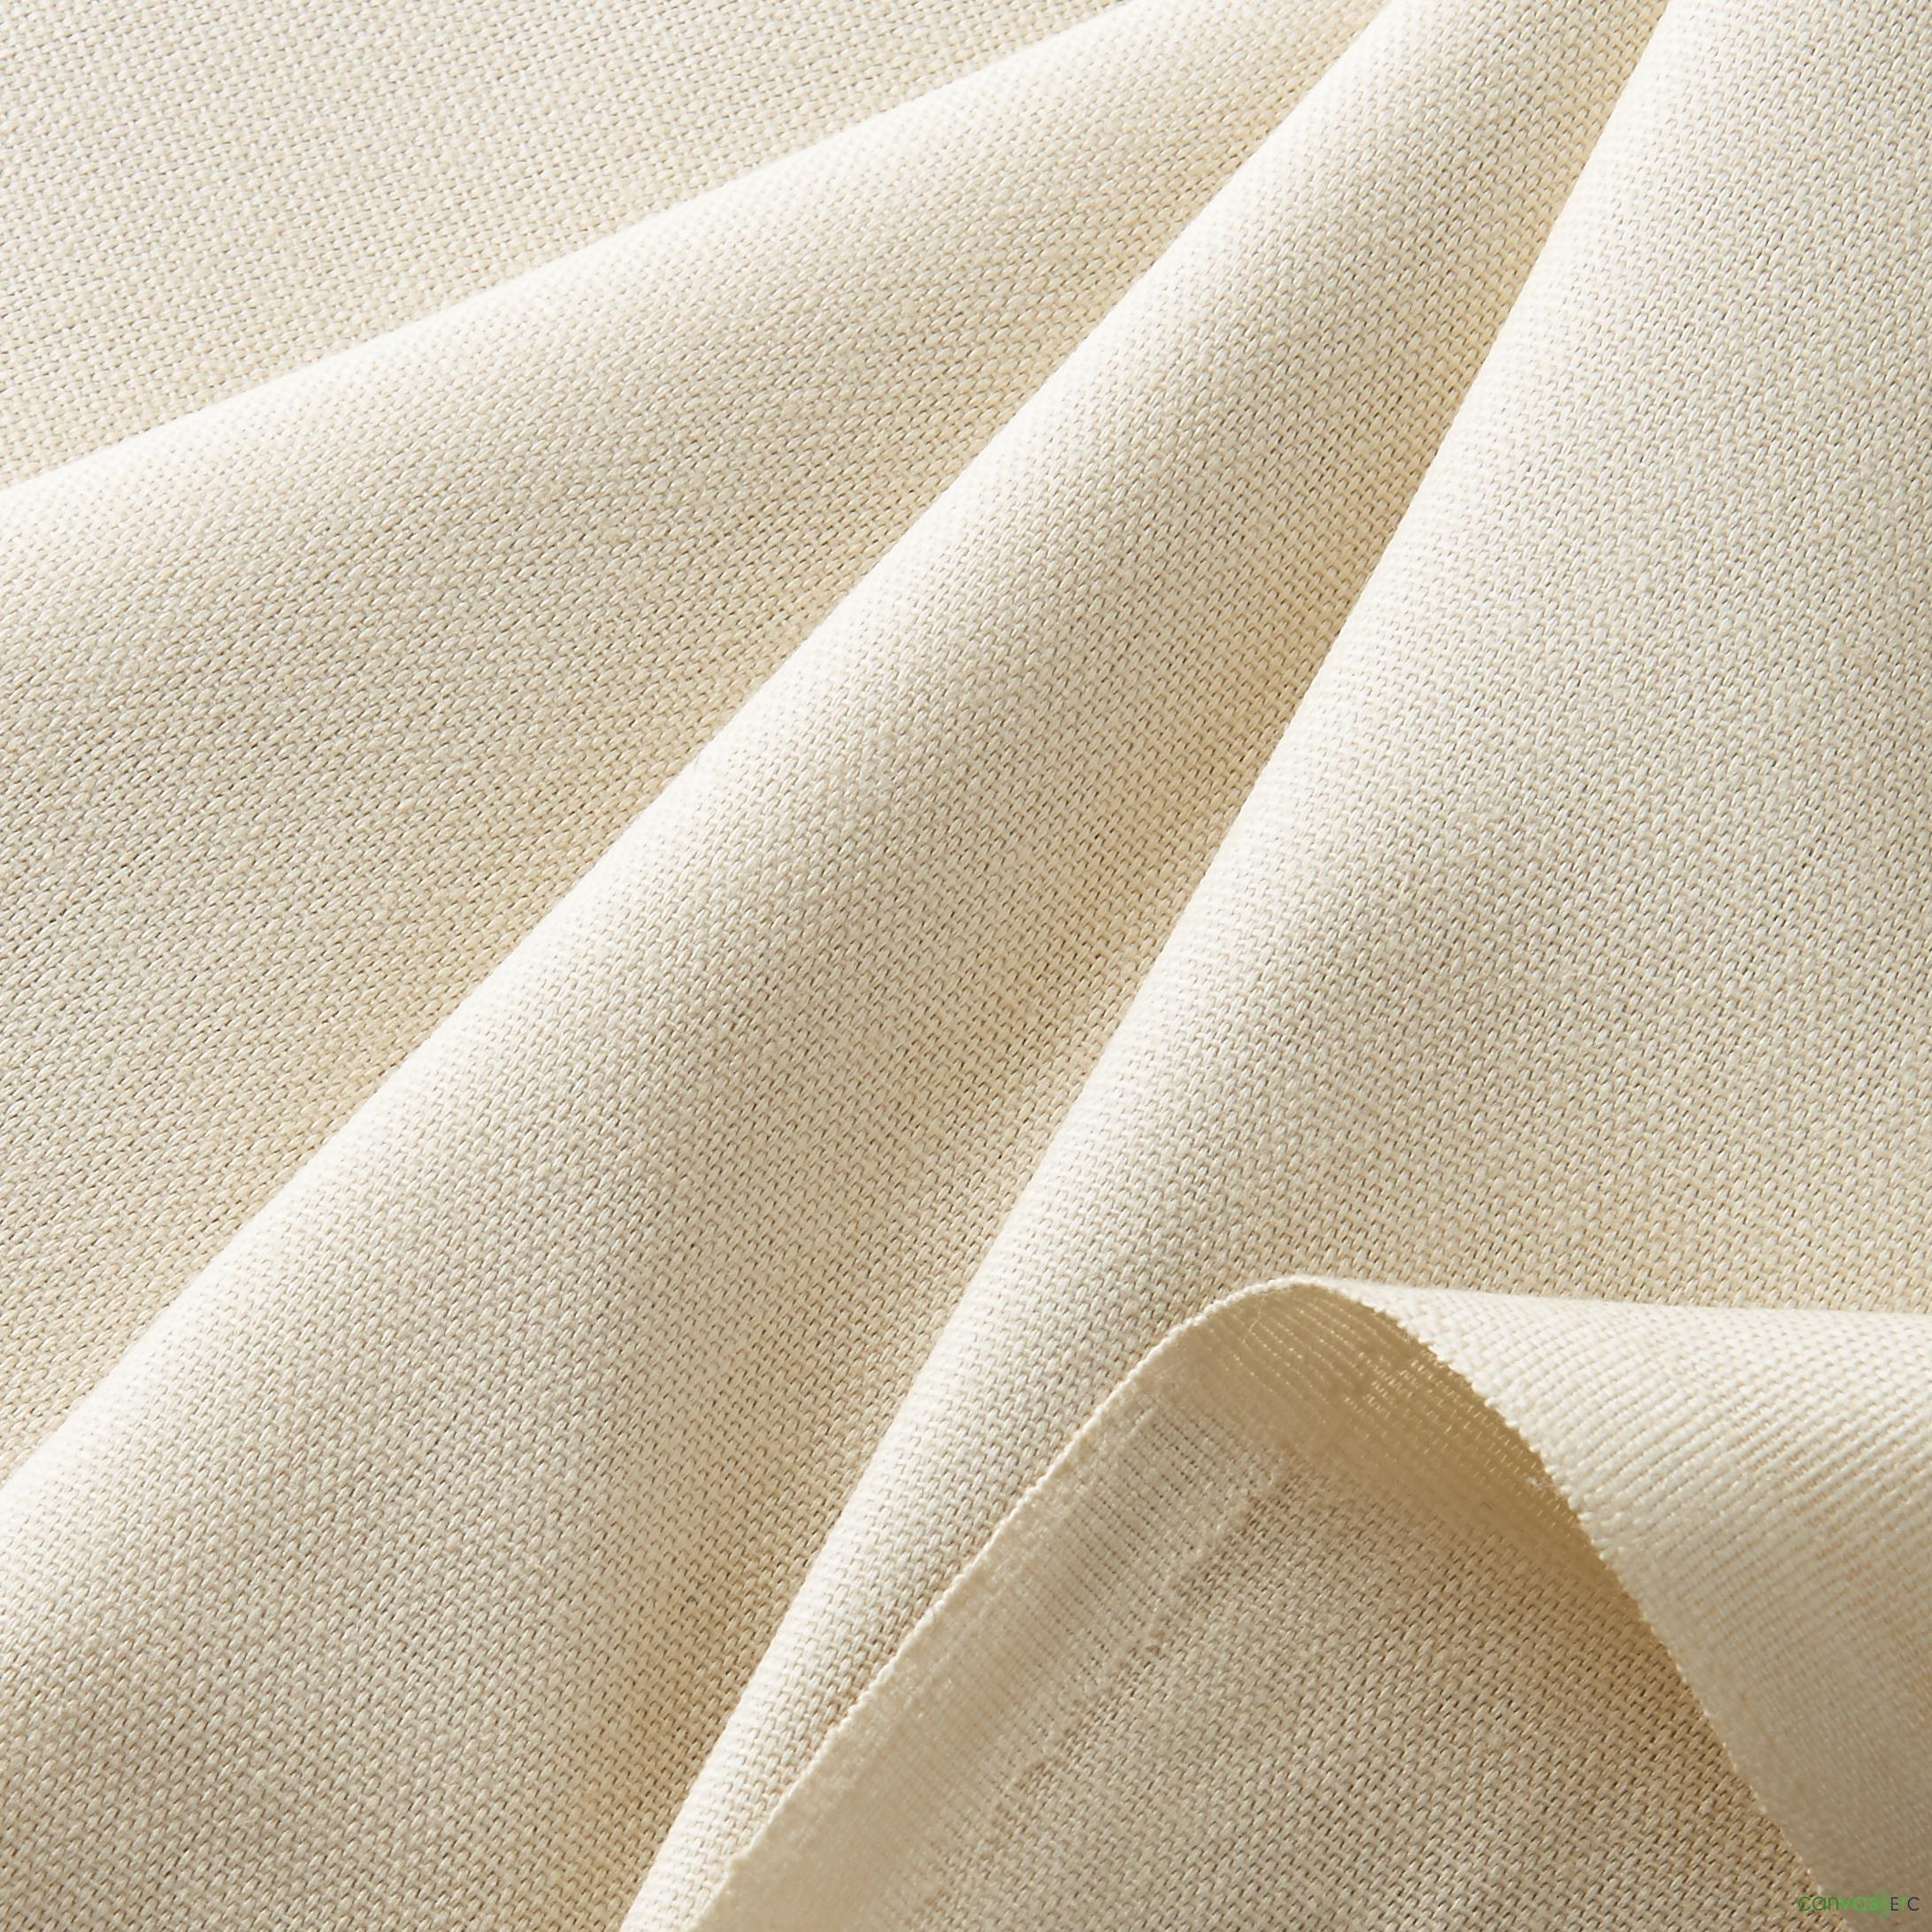 Cream Canvas Fabric - 7 oz | 58/60"